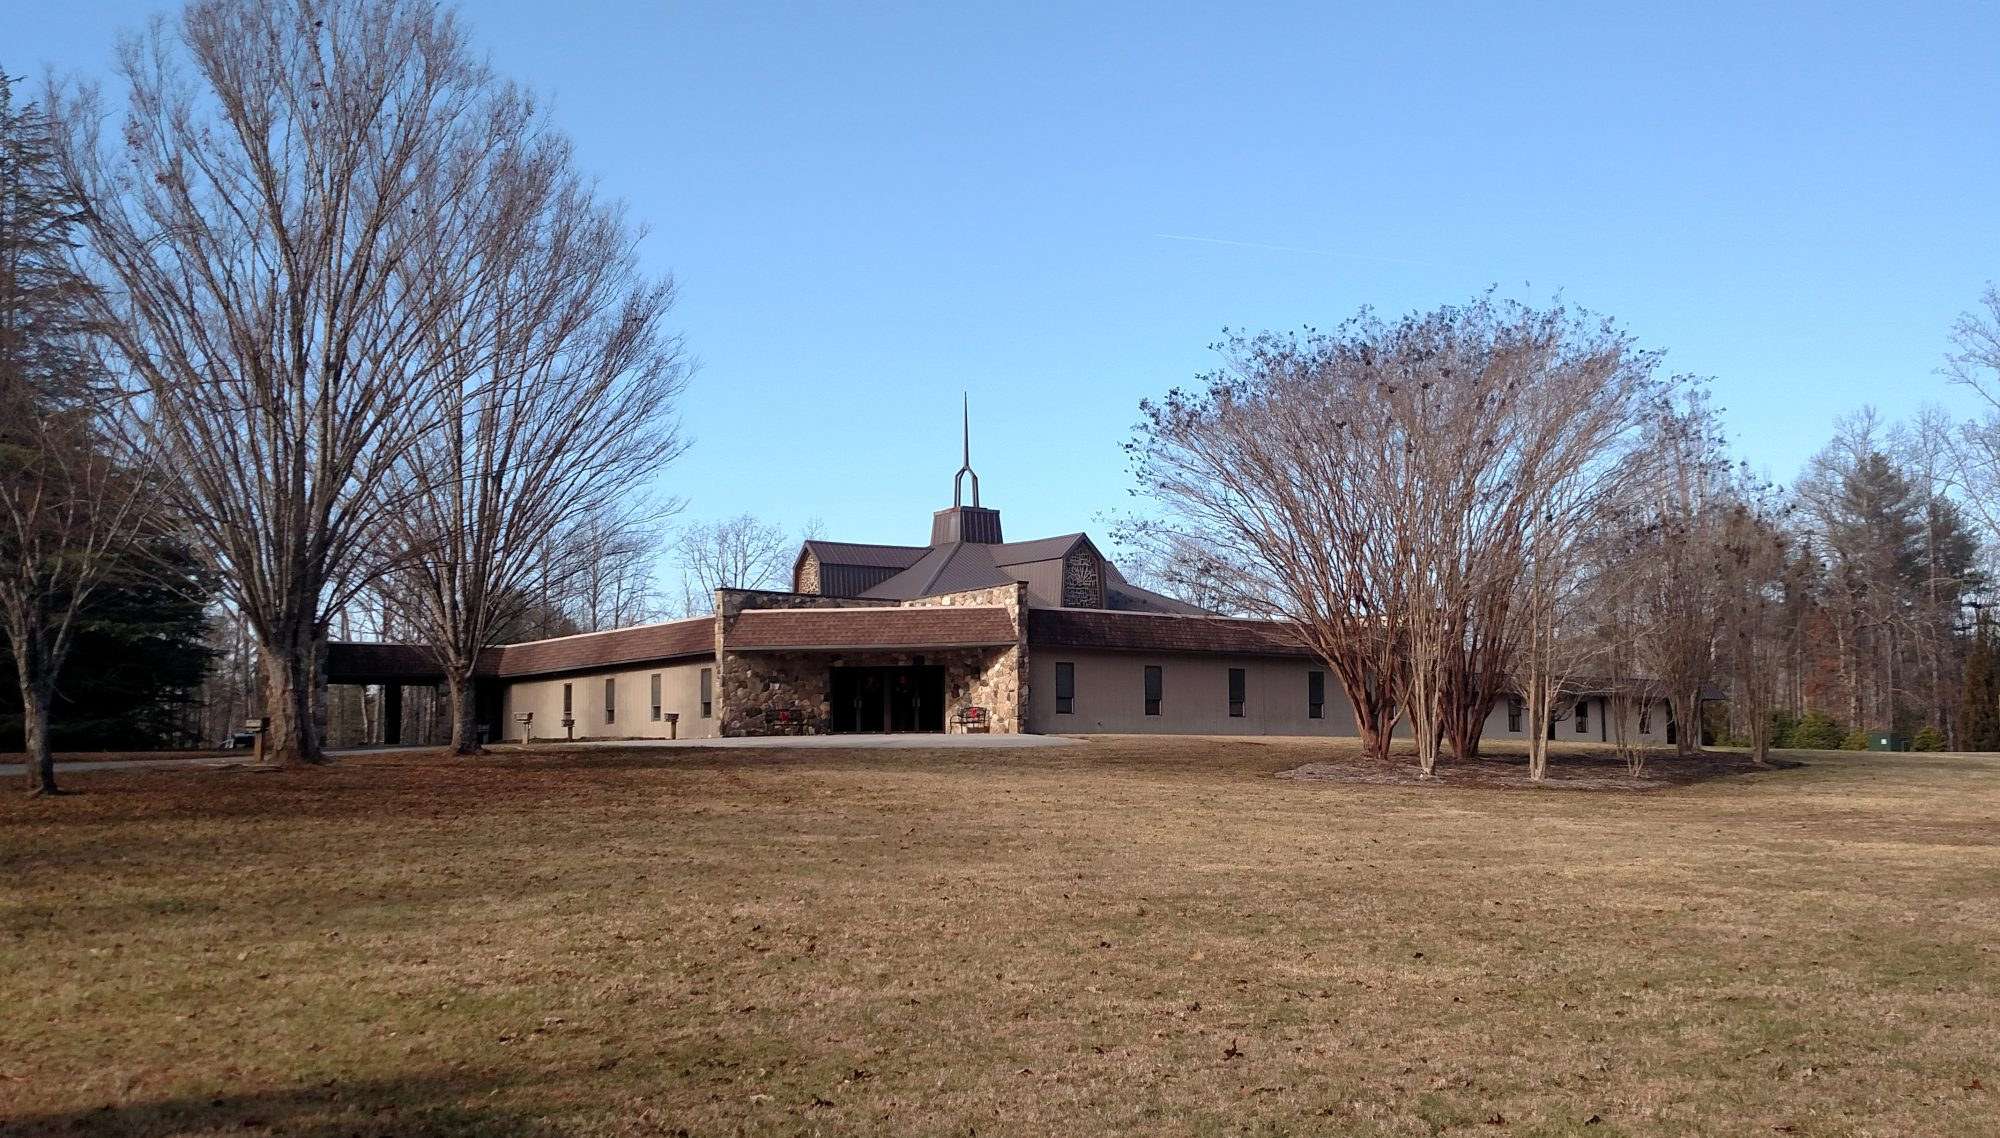 Mountain Rest Baptist Church